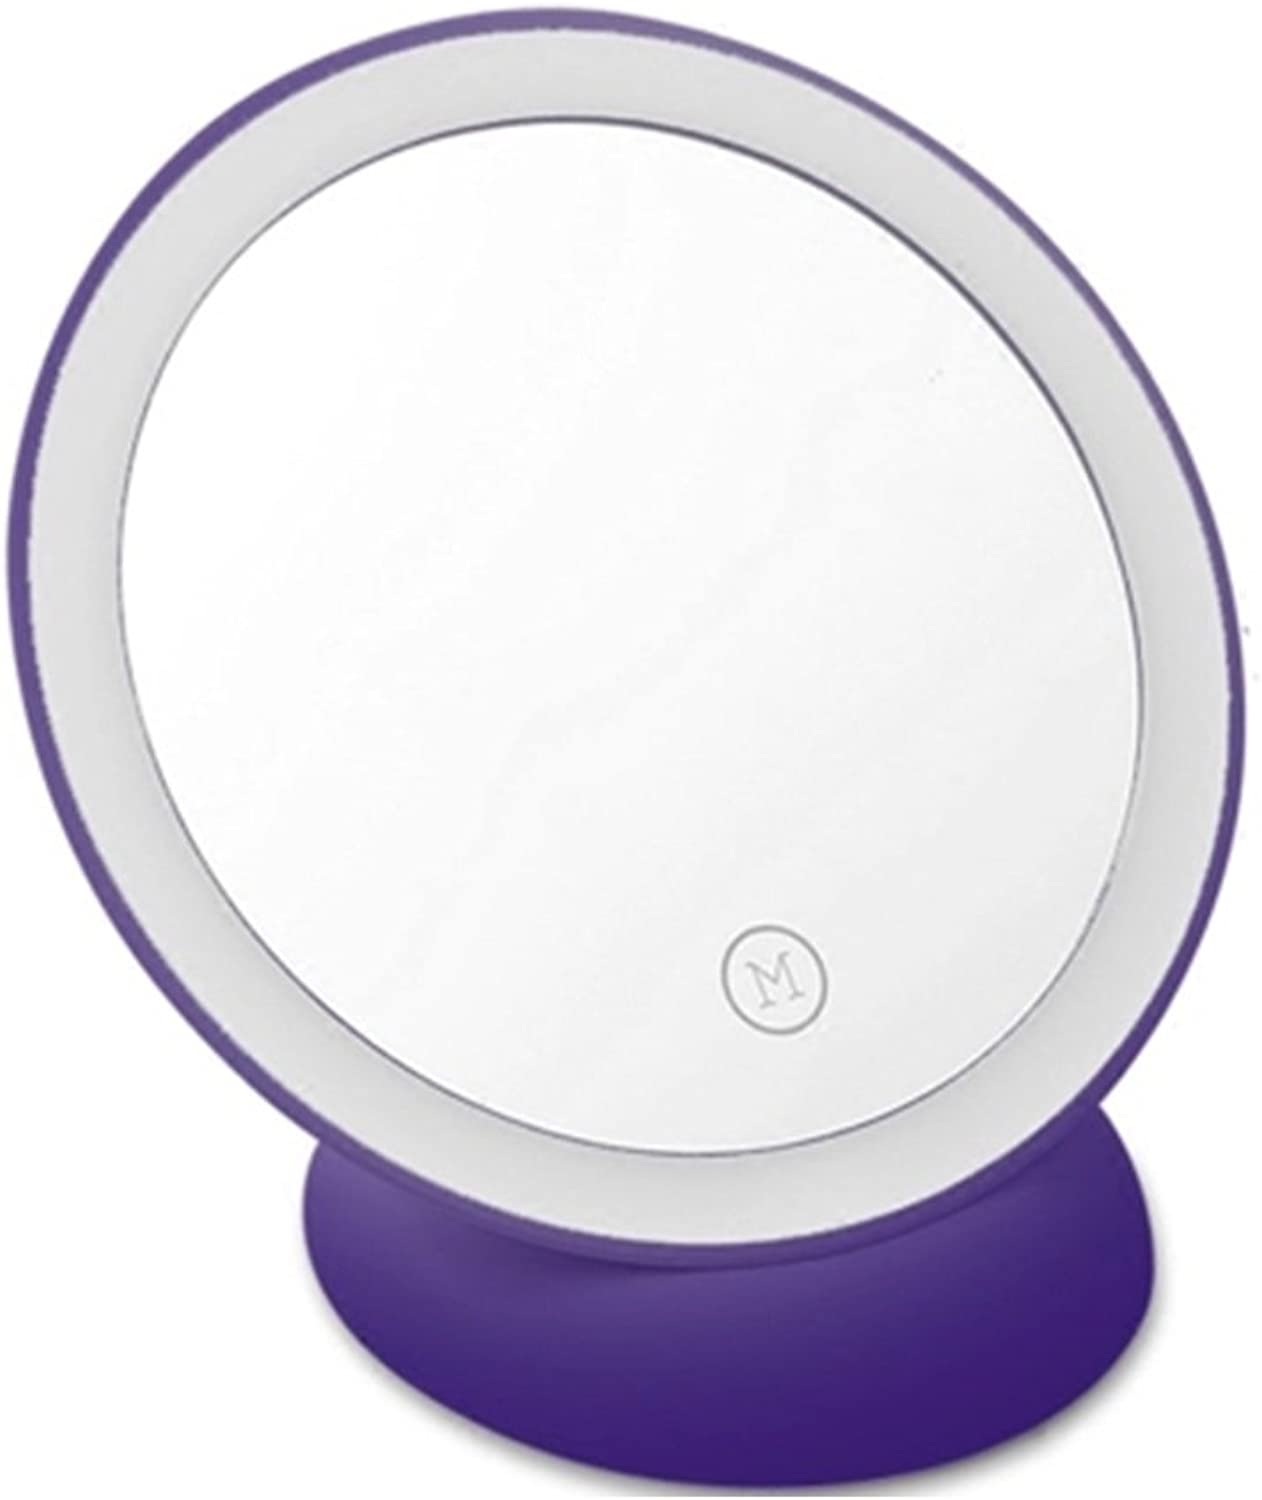 YD Mirror ABS Intelligent Filling Magnet Wall 360° Adjustable Compact and Convenient Not Wired Brightness Adjustable for Various Occasions Princess Dressing Mirror  & (color   Purple)